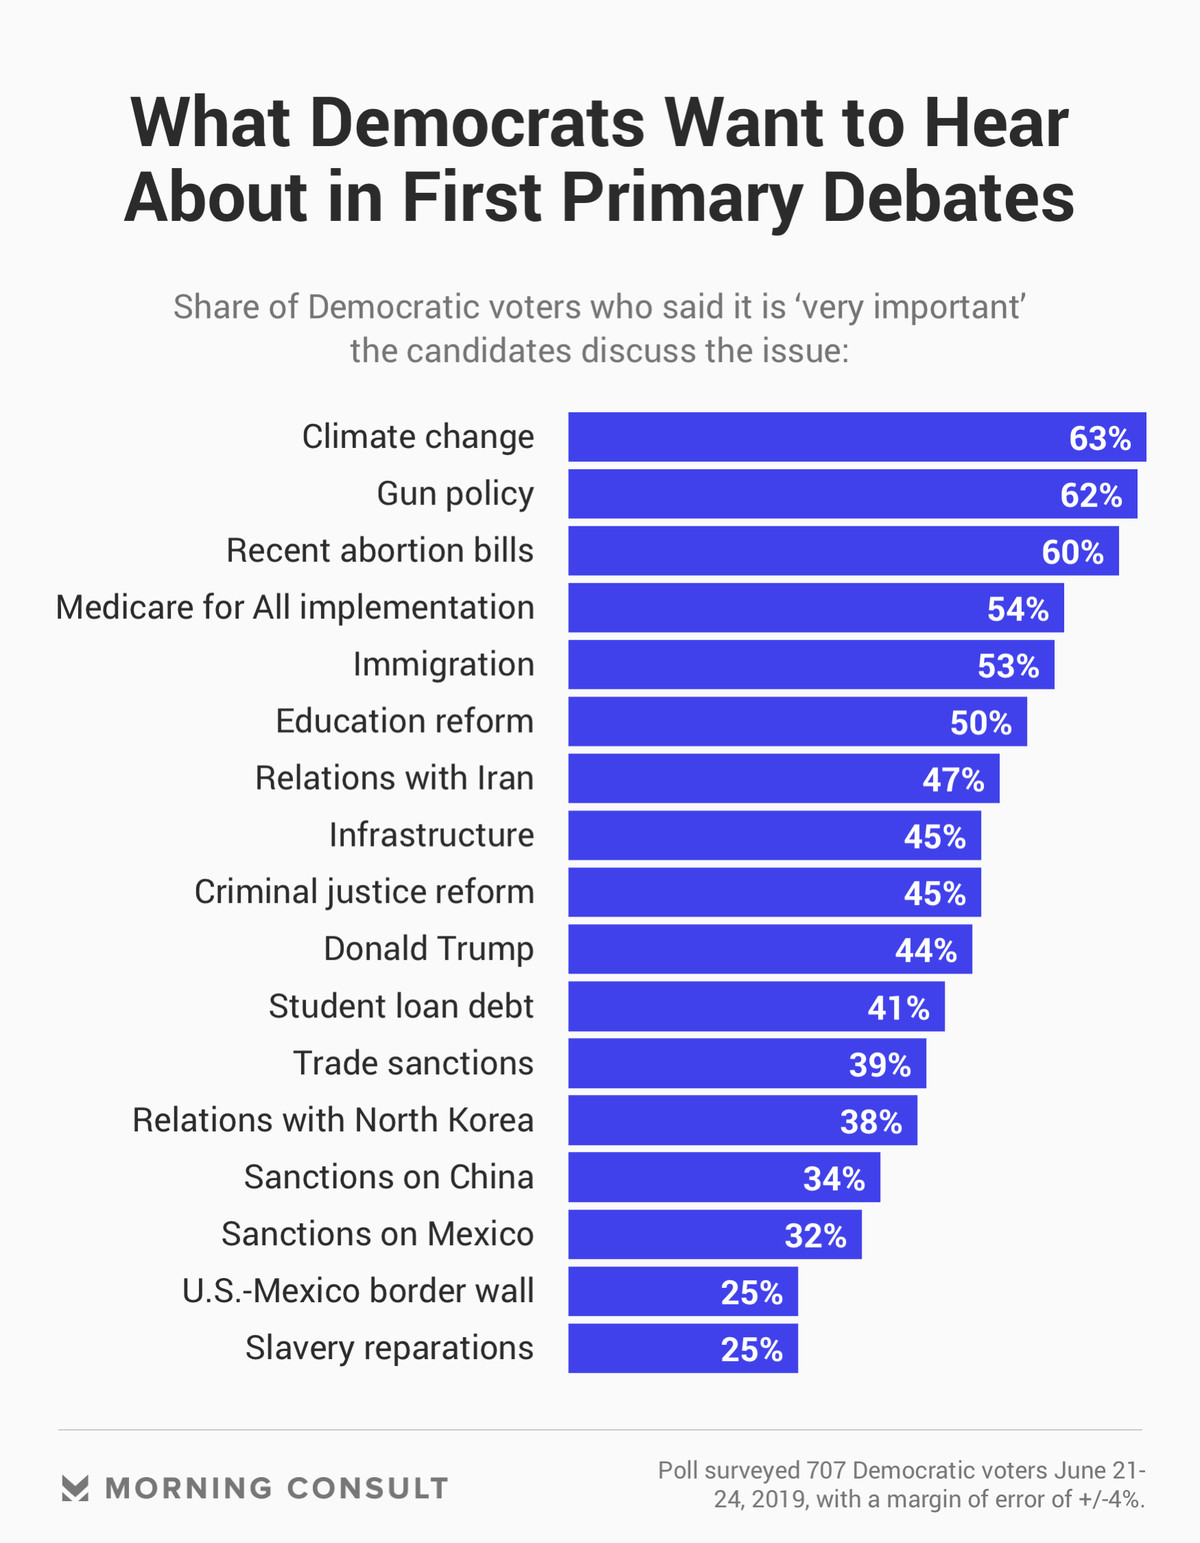 A chart showing what Democrats want to hear about in the first debate.